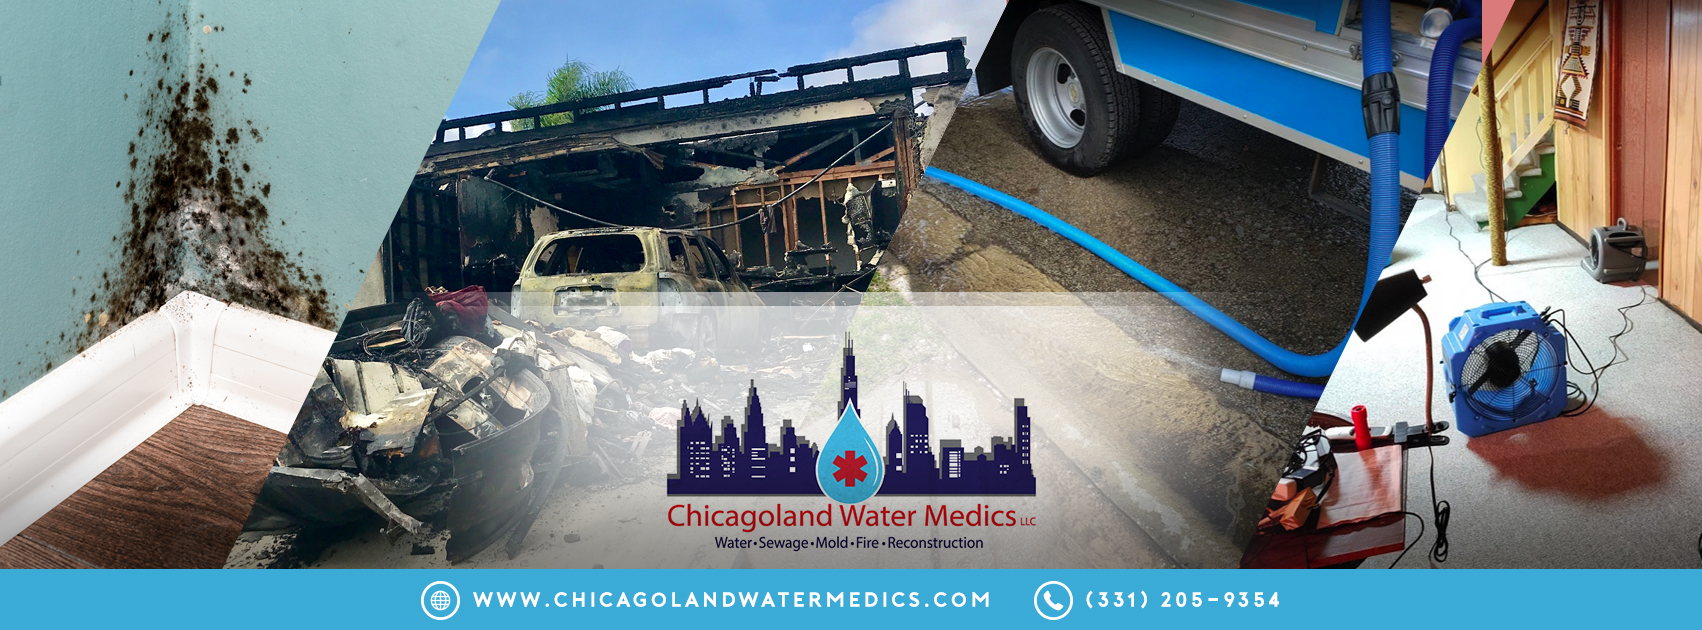 Chicagoland Water Medics, LLC reviews   Water Damage Specialist at 444 E Roosevelt Rd - Lombard IL